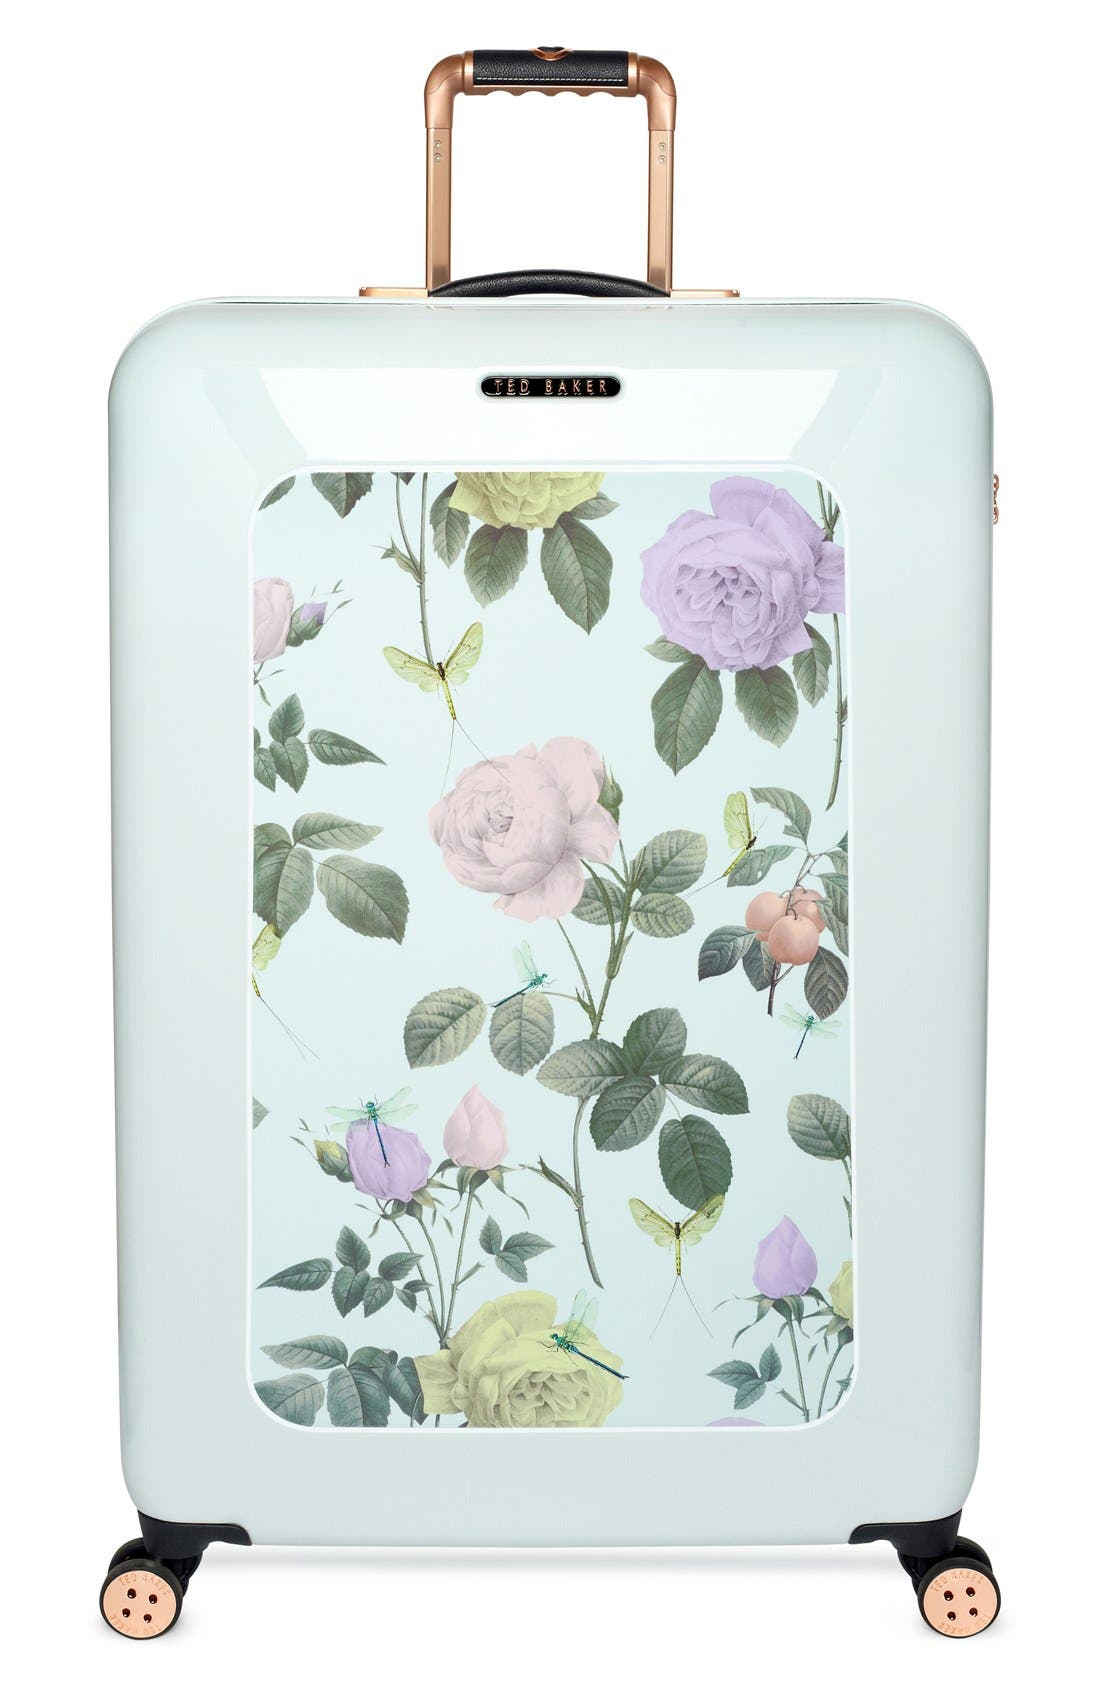 Alternate Image 1 Selected - Ted Baker London 'Large Rose' Hard Shell Suitcase (32 Inch)